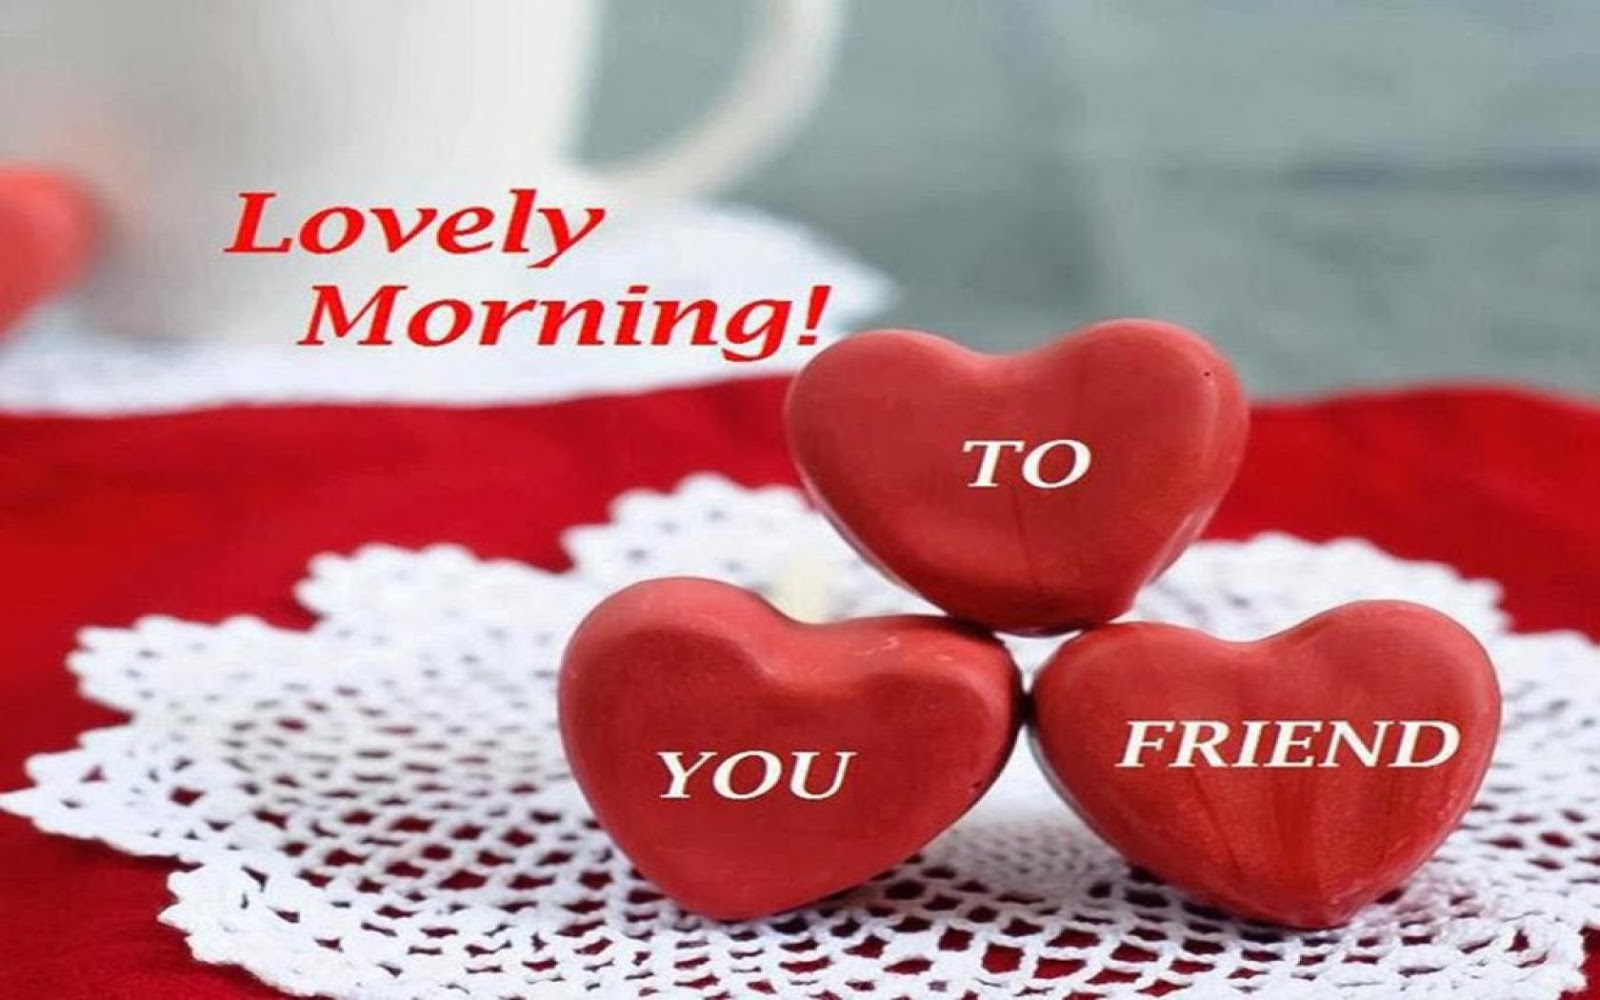 Good Morning Friends Wallpapers For Facebook Kamos HD ... Good Morning Friends Wallpaper Hd